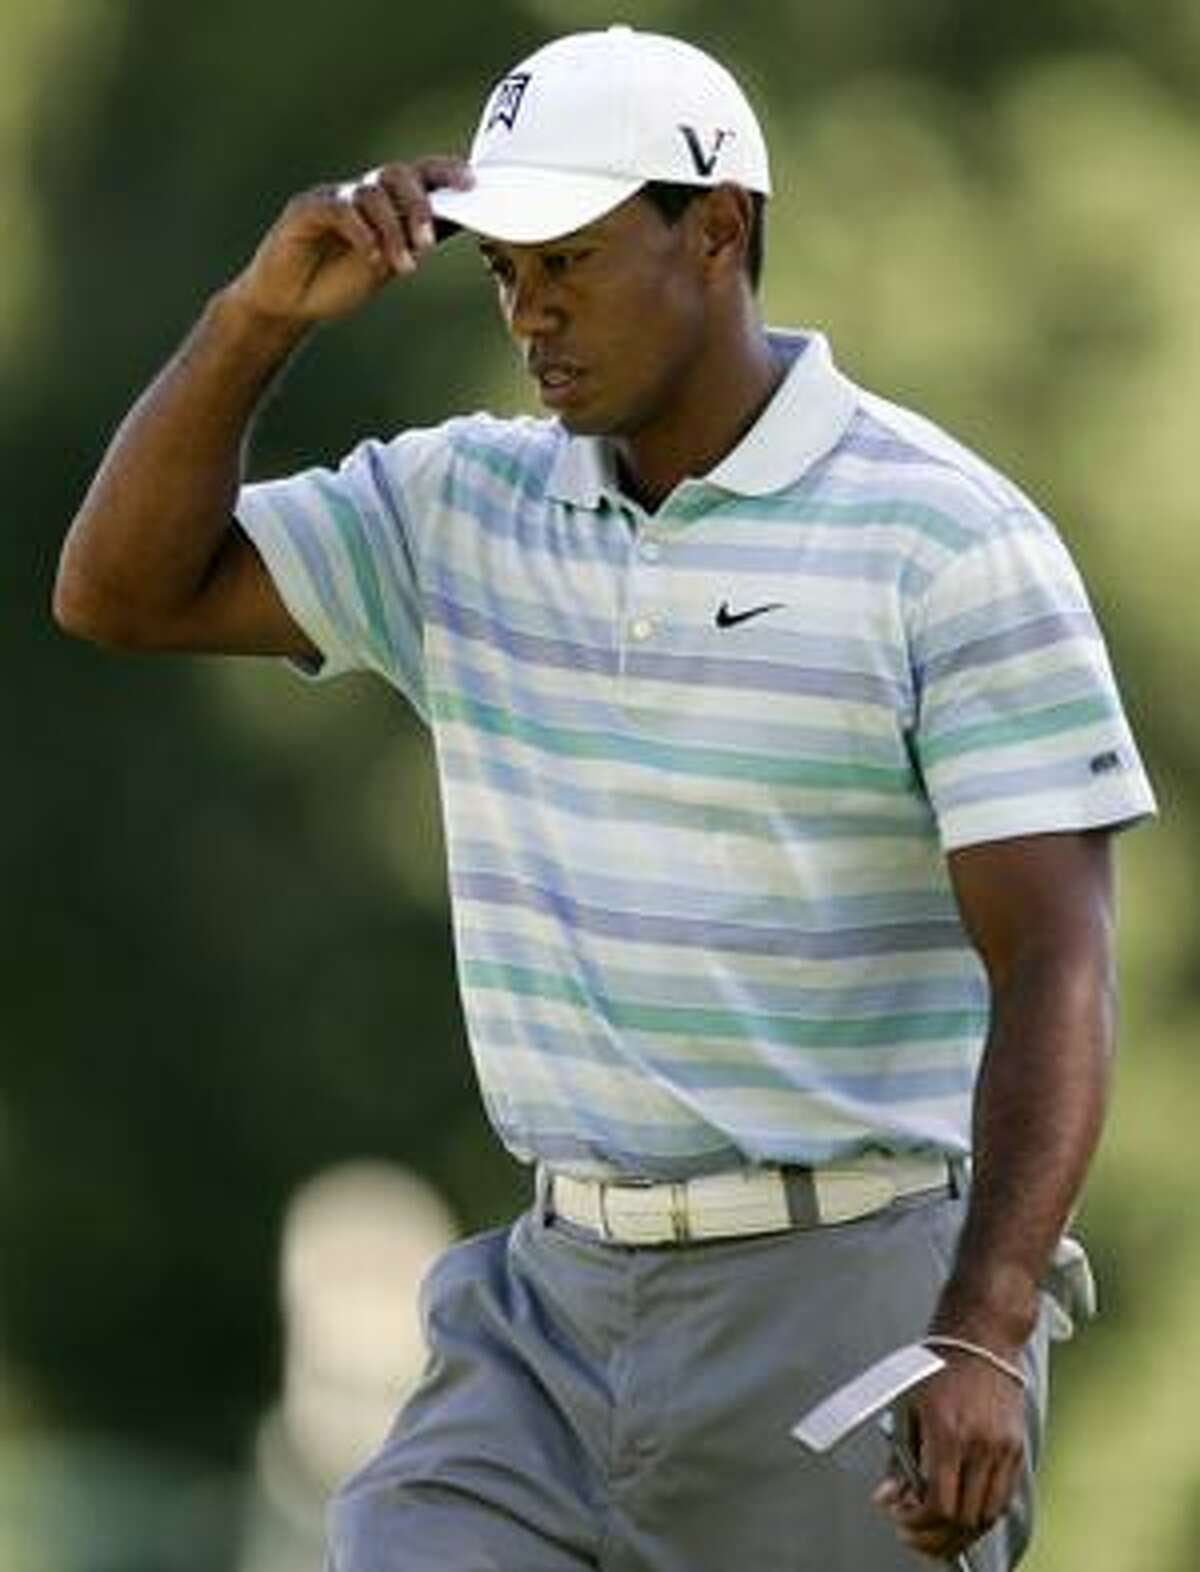 Tiger Woods looks dejected as he walks off the ninth hole after four bogeys on the back nine during the second round of The Barclays golf tournament, Friday, Aug. 27, 2010, in Paramus, N.J. (AP Photo/Rich Schultz)